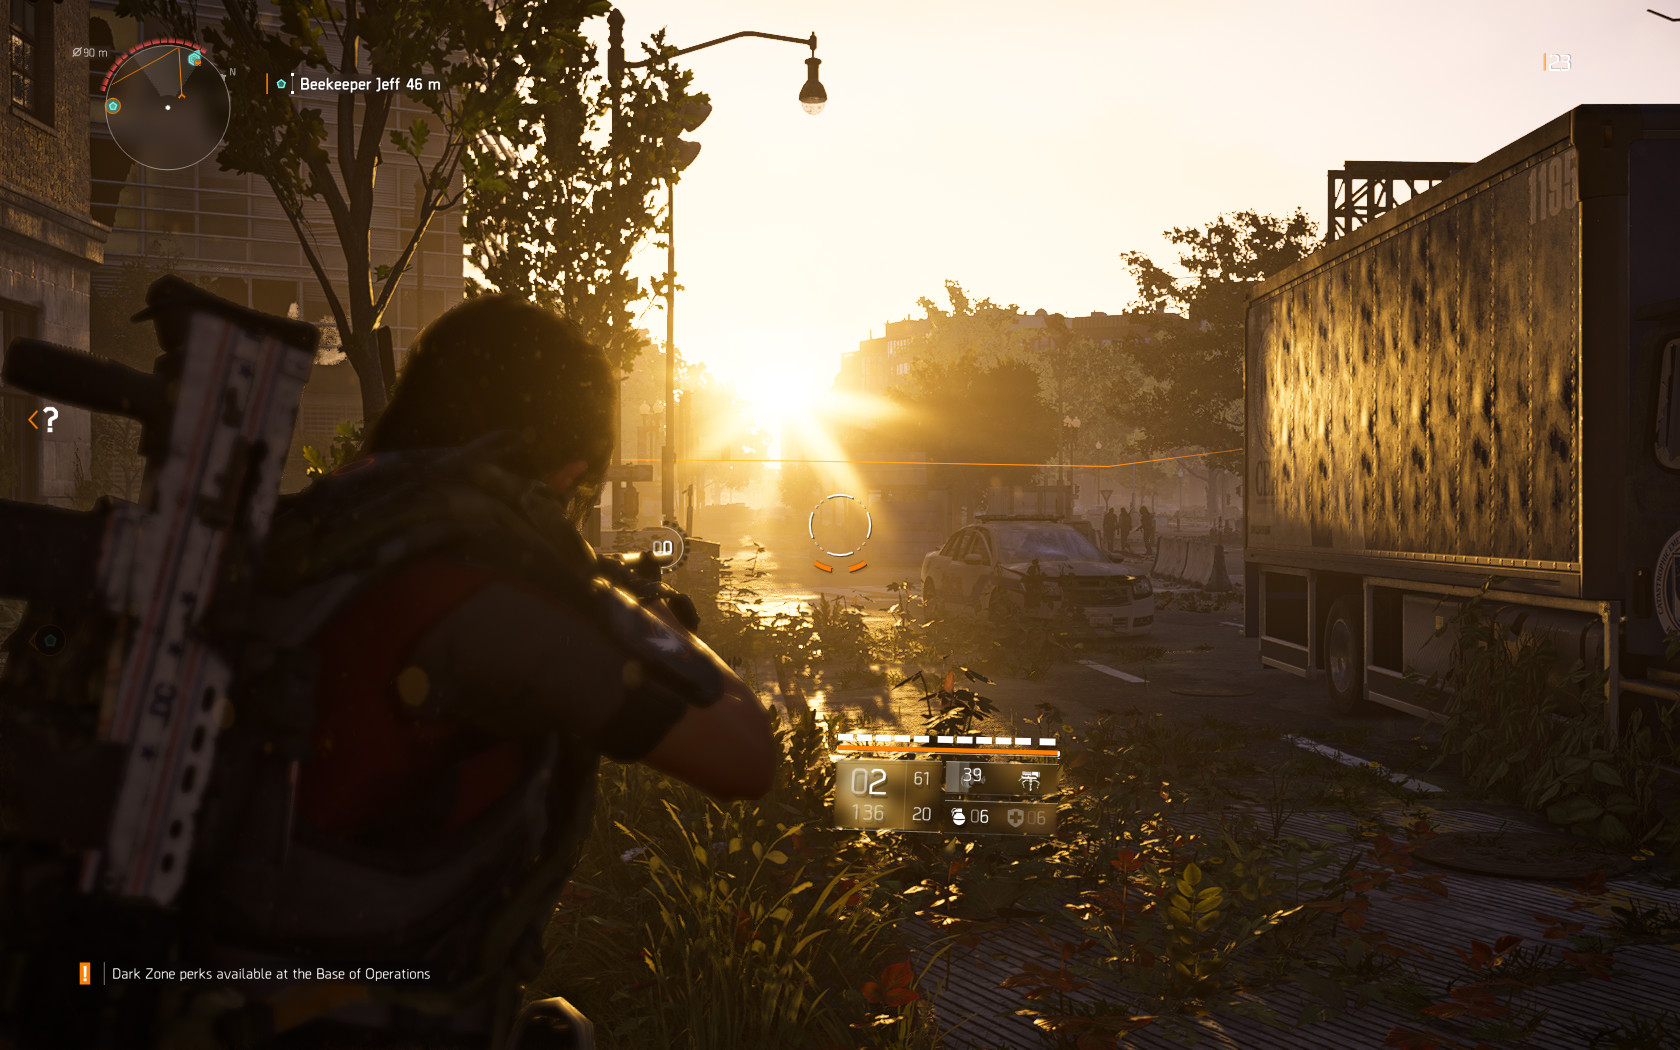 Tom Clancy's The Division 2 Screenshot 2019.03.19 - 10.40.18.25 - Copy.png